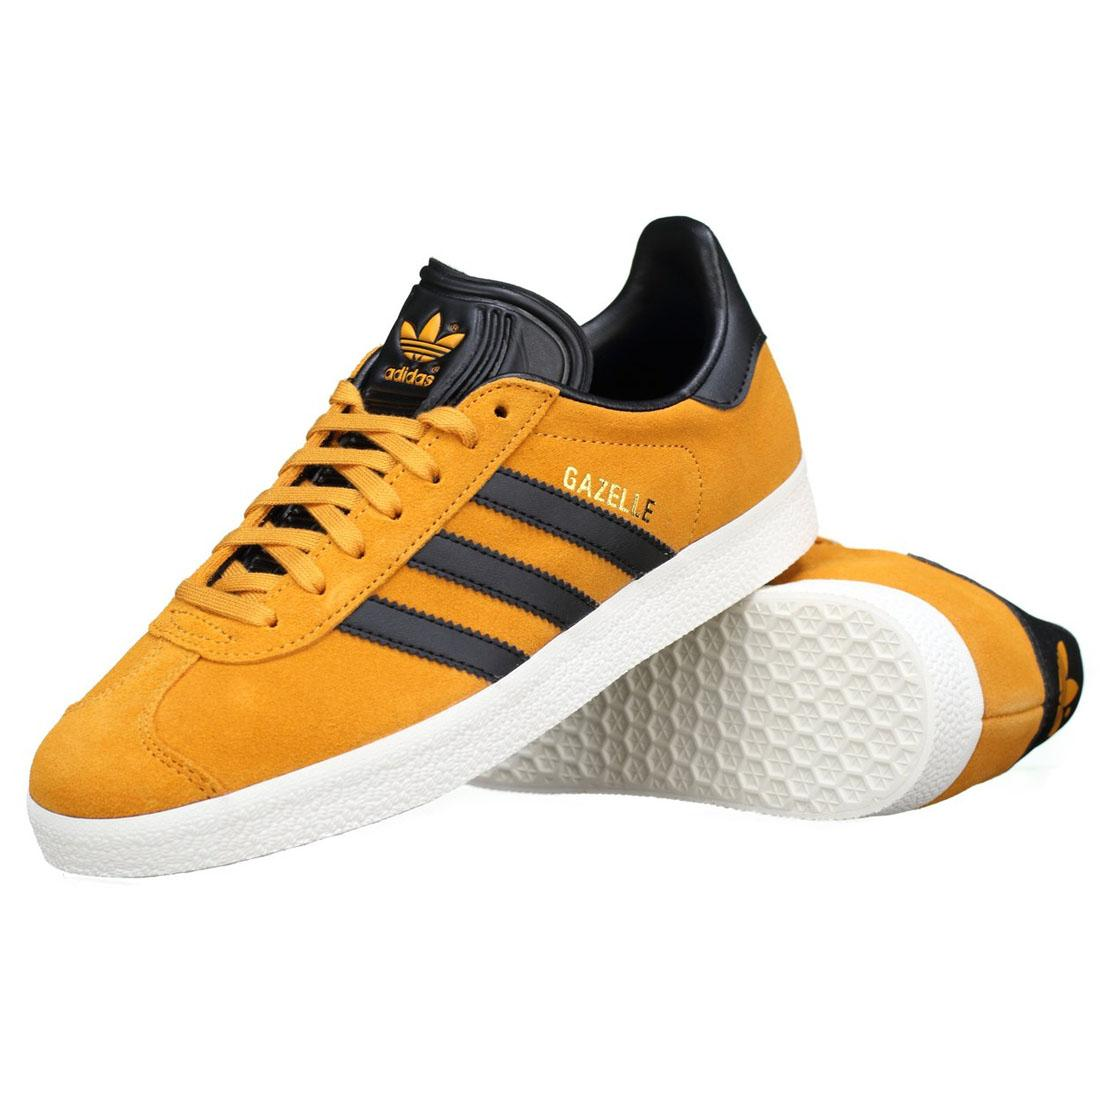 ADIDAS ORIGINALS Baskets Gazelle homme orange